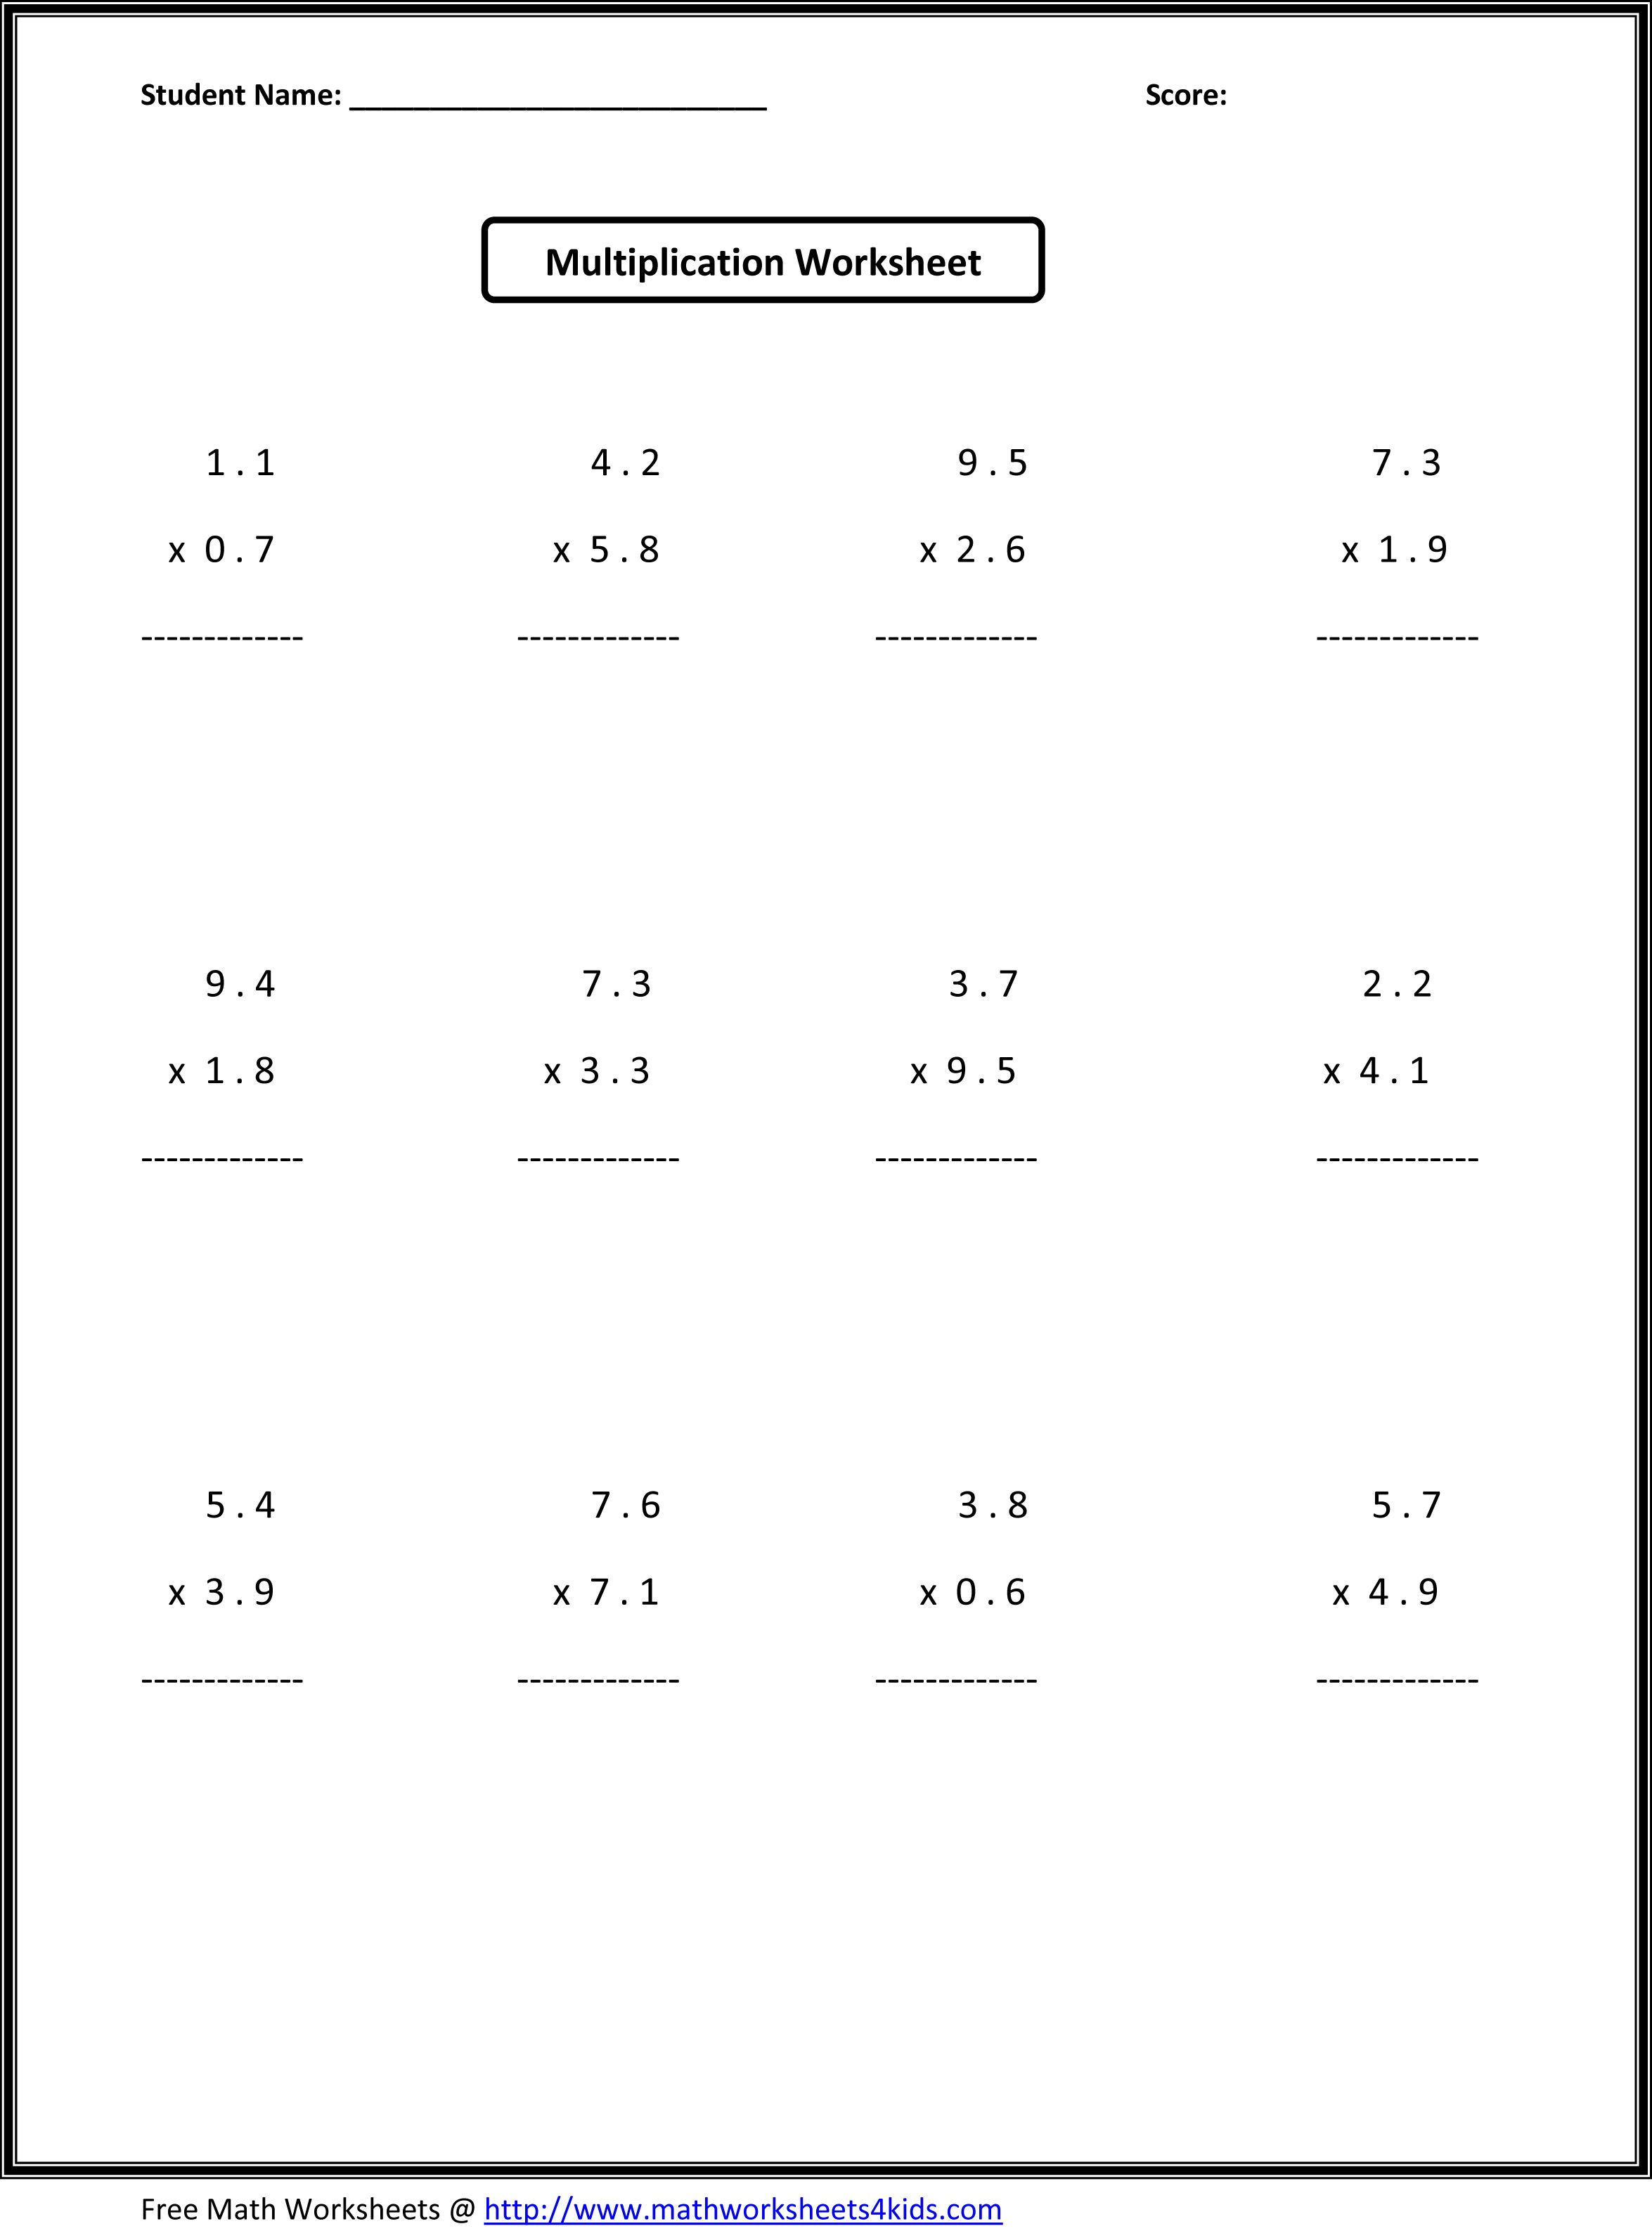 Worksheet Worksheets For Grade 6 Math grade 6 math worksheets delwfg com worksheet for year noconformity free worksheet